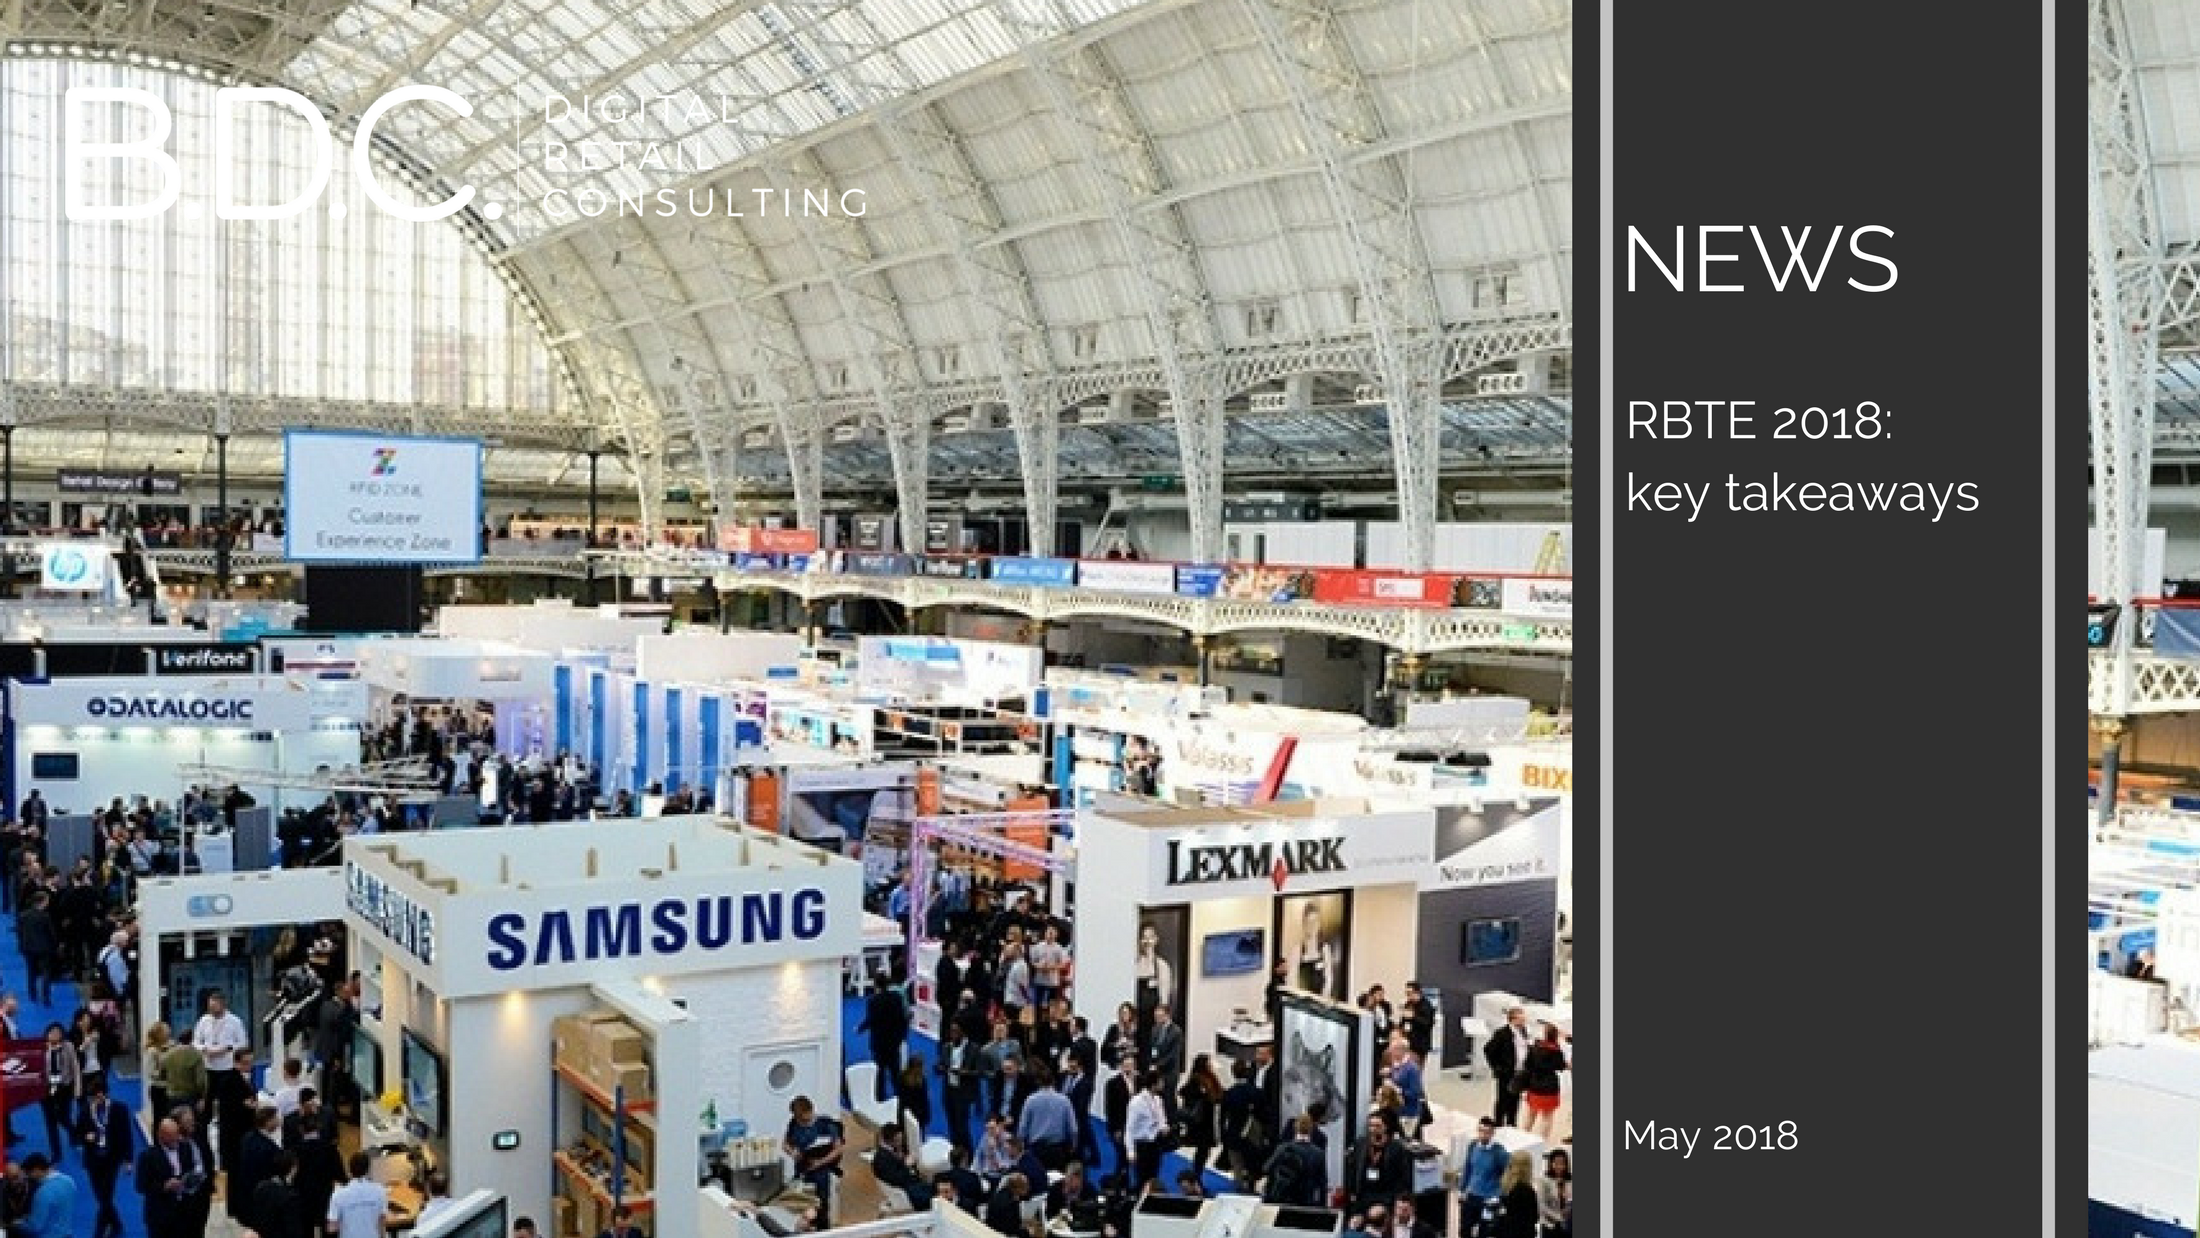 Trends News 38 - RBTE 2018: key takeways